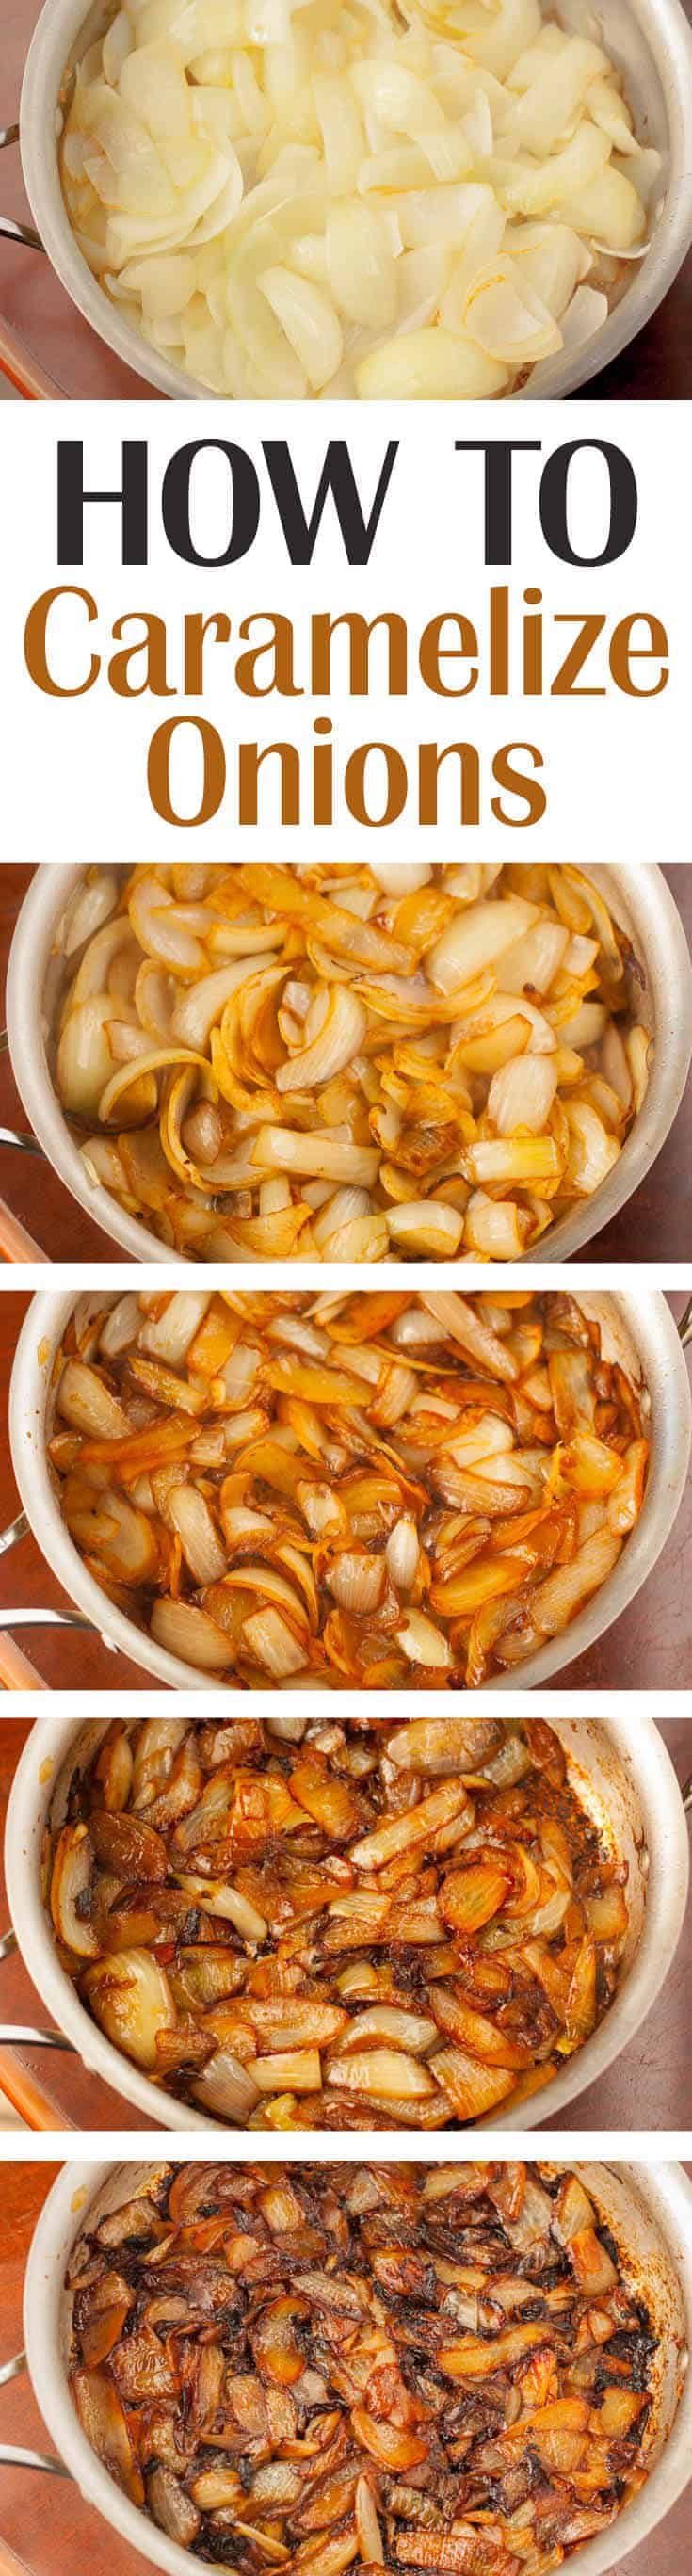 How to Caramelize Onions: An Ultimate Guide on Caramelized Onions